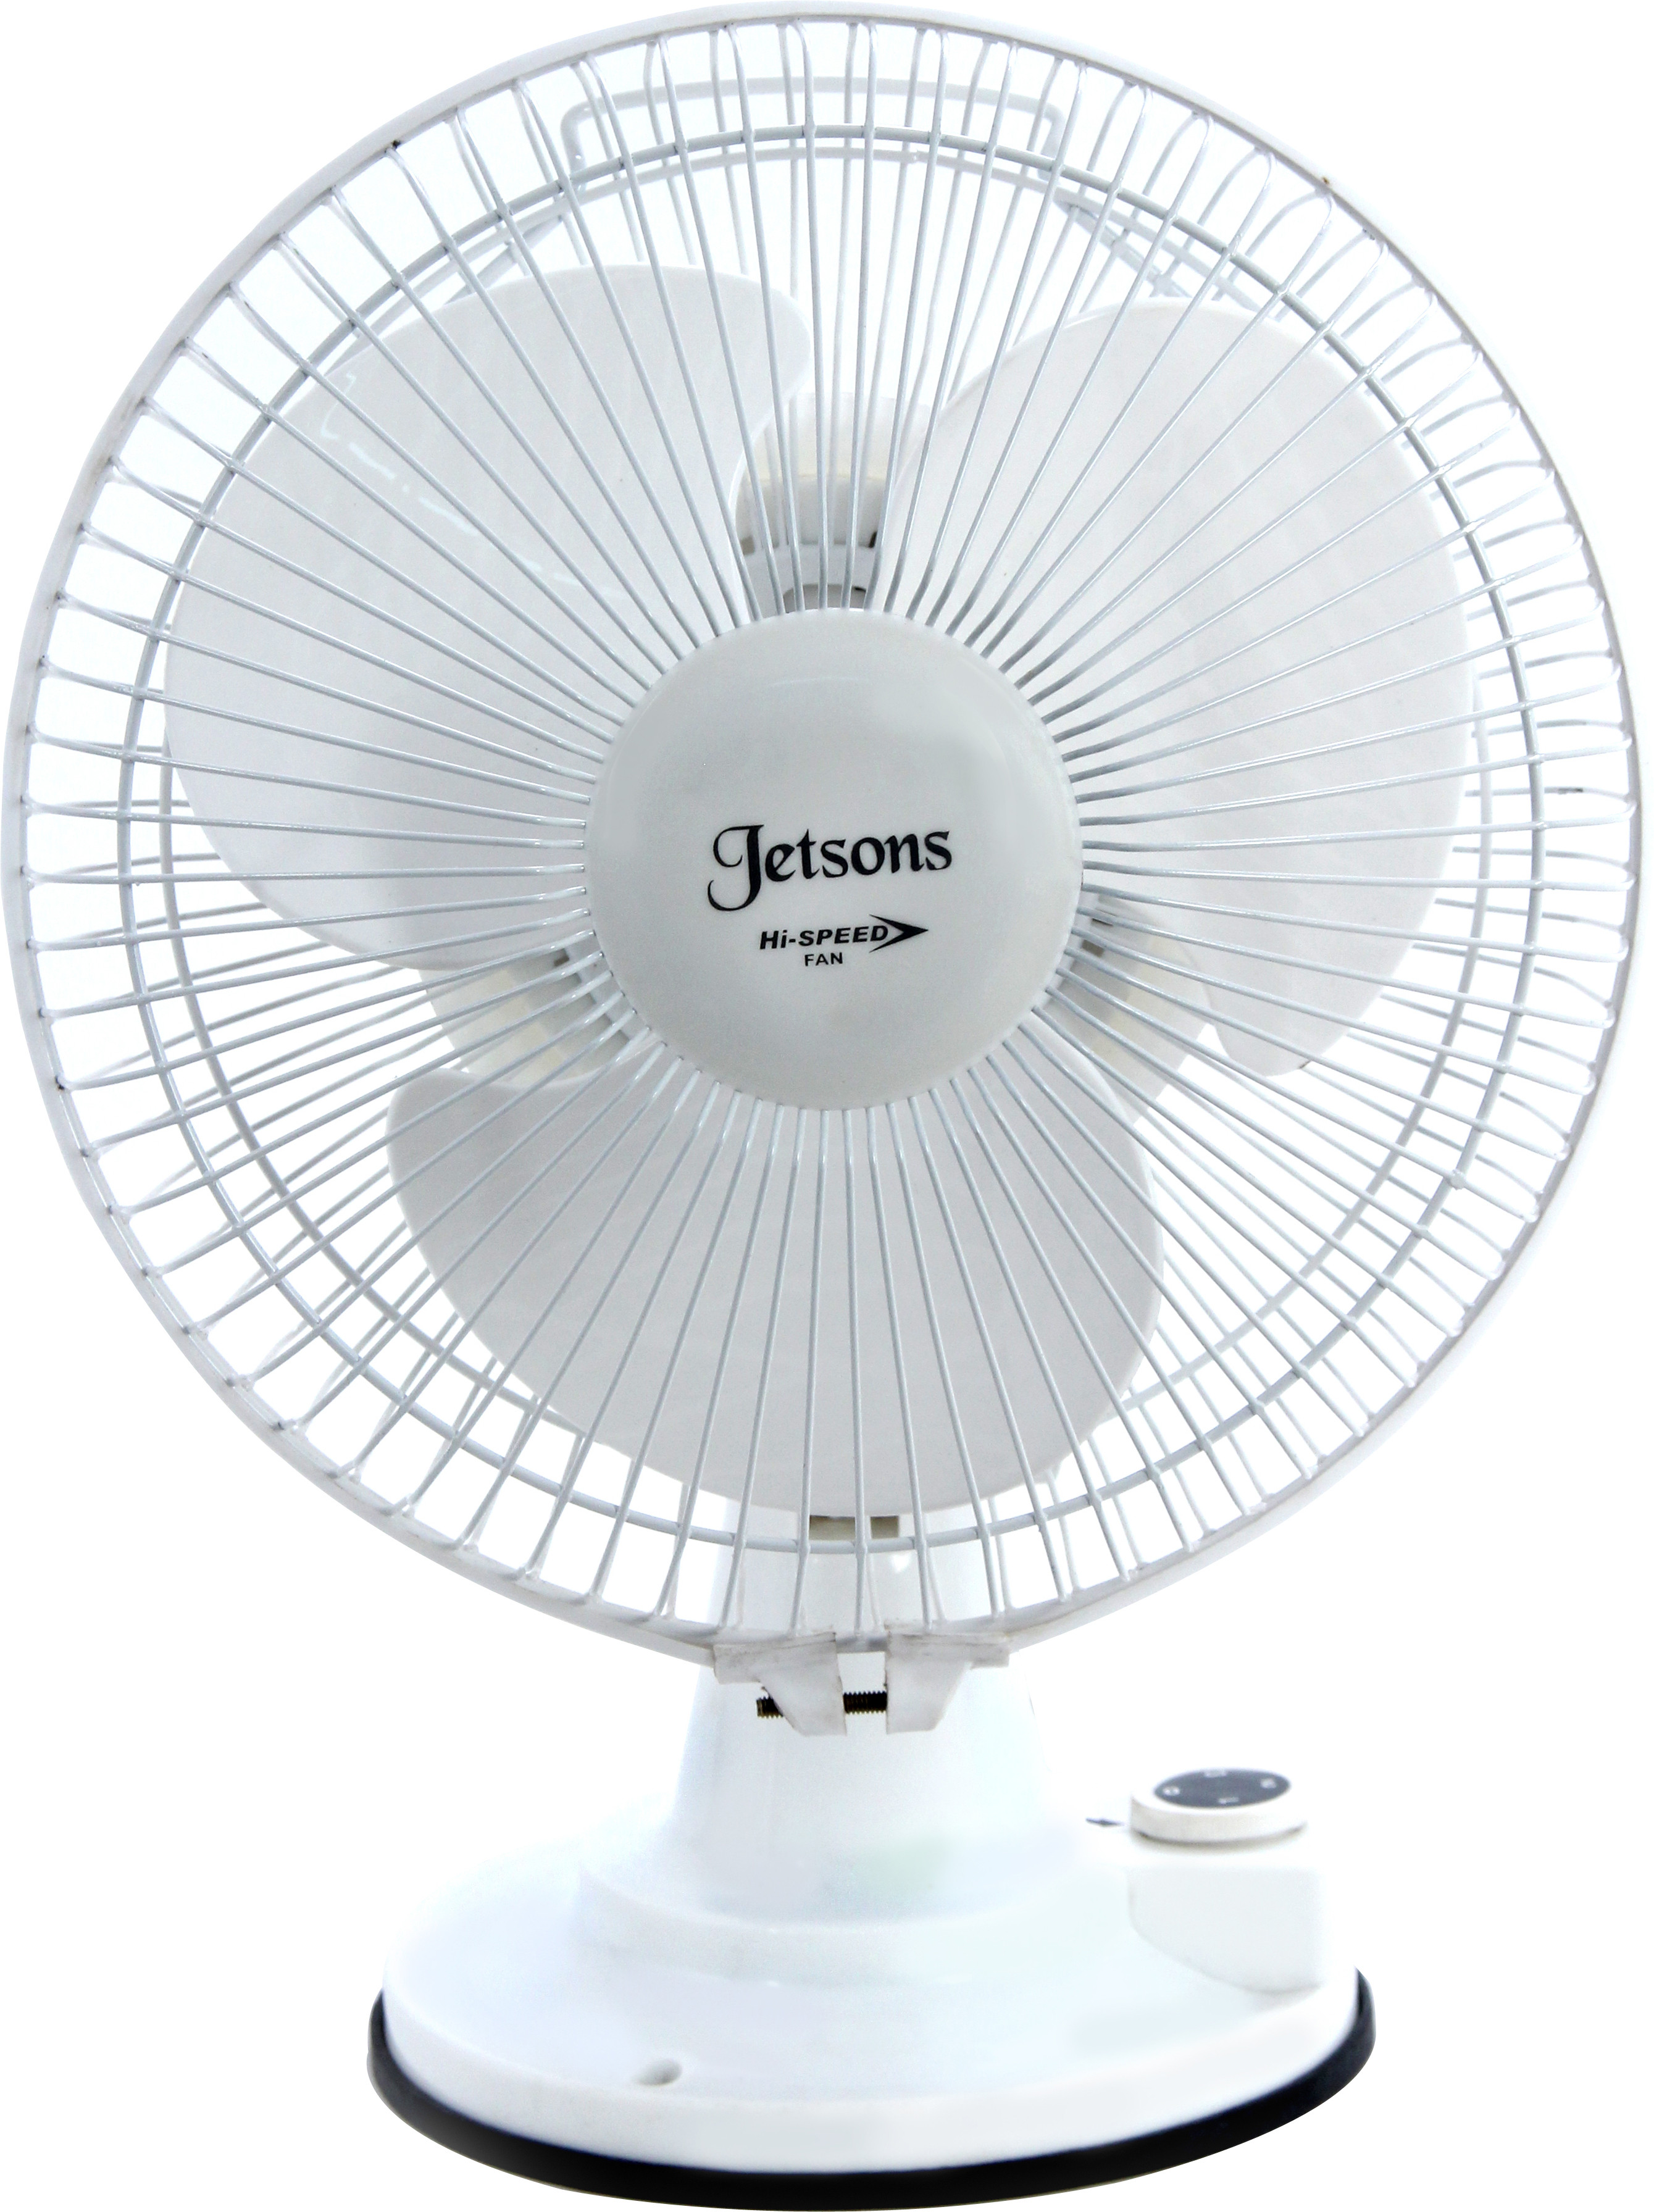 Jetsons Mp 212 12 Inch 3 Blade Table Fan White Price In India 30 Apr 2019 Compare Online Offline